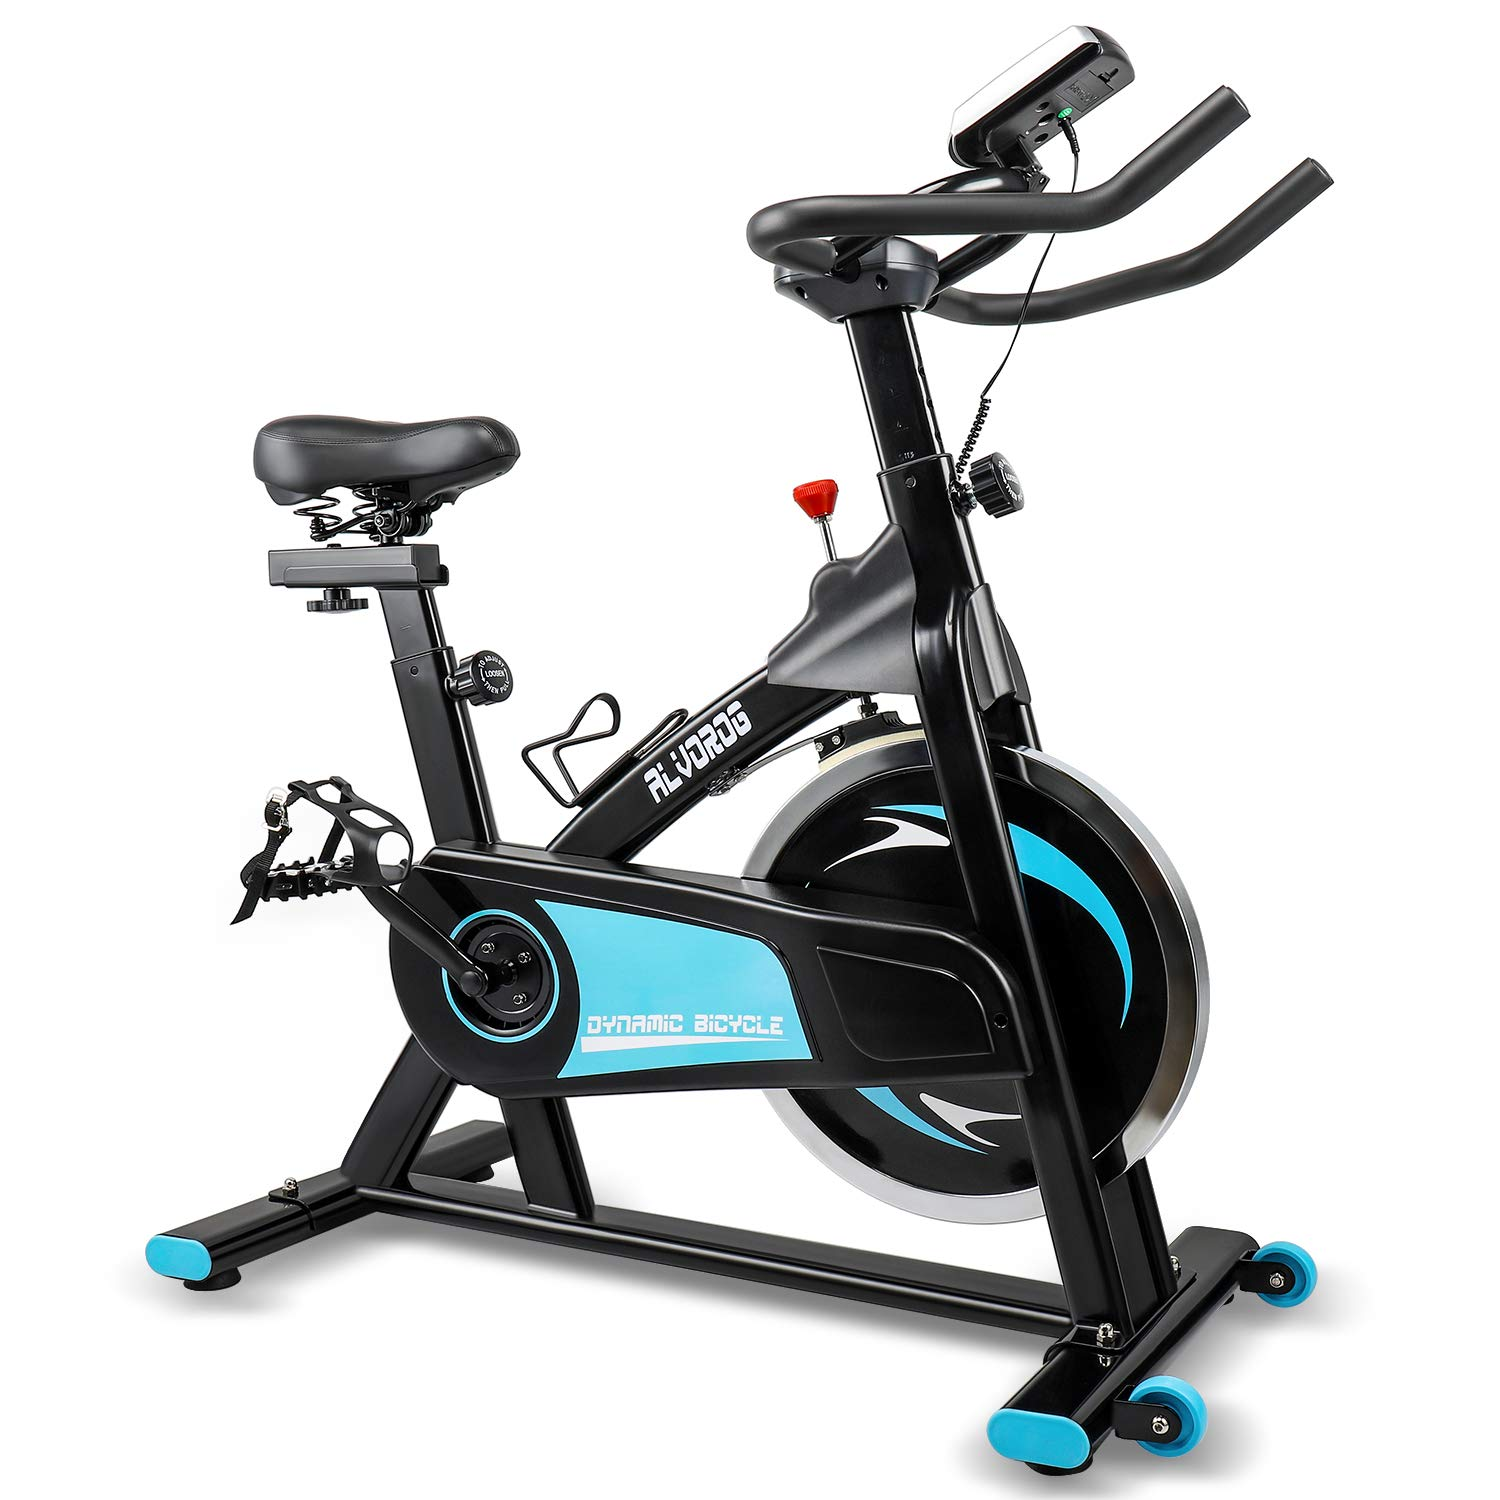 alvorog Indoor Exercise Bike Stationary Cycling Bike with LCD Monitor Quiet Smooth Belt Drive System Adjustable Seat & Handlebars for Home Cardio Gym Workout Bike Training by alvorog